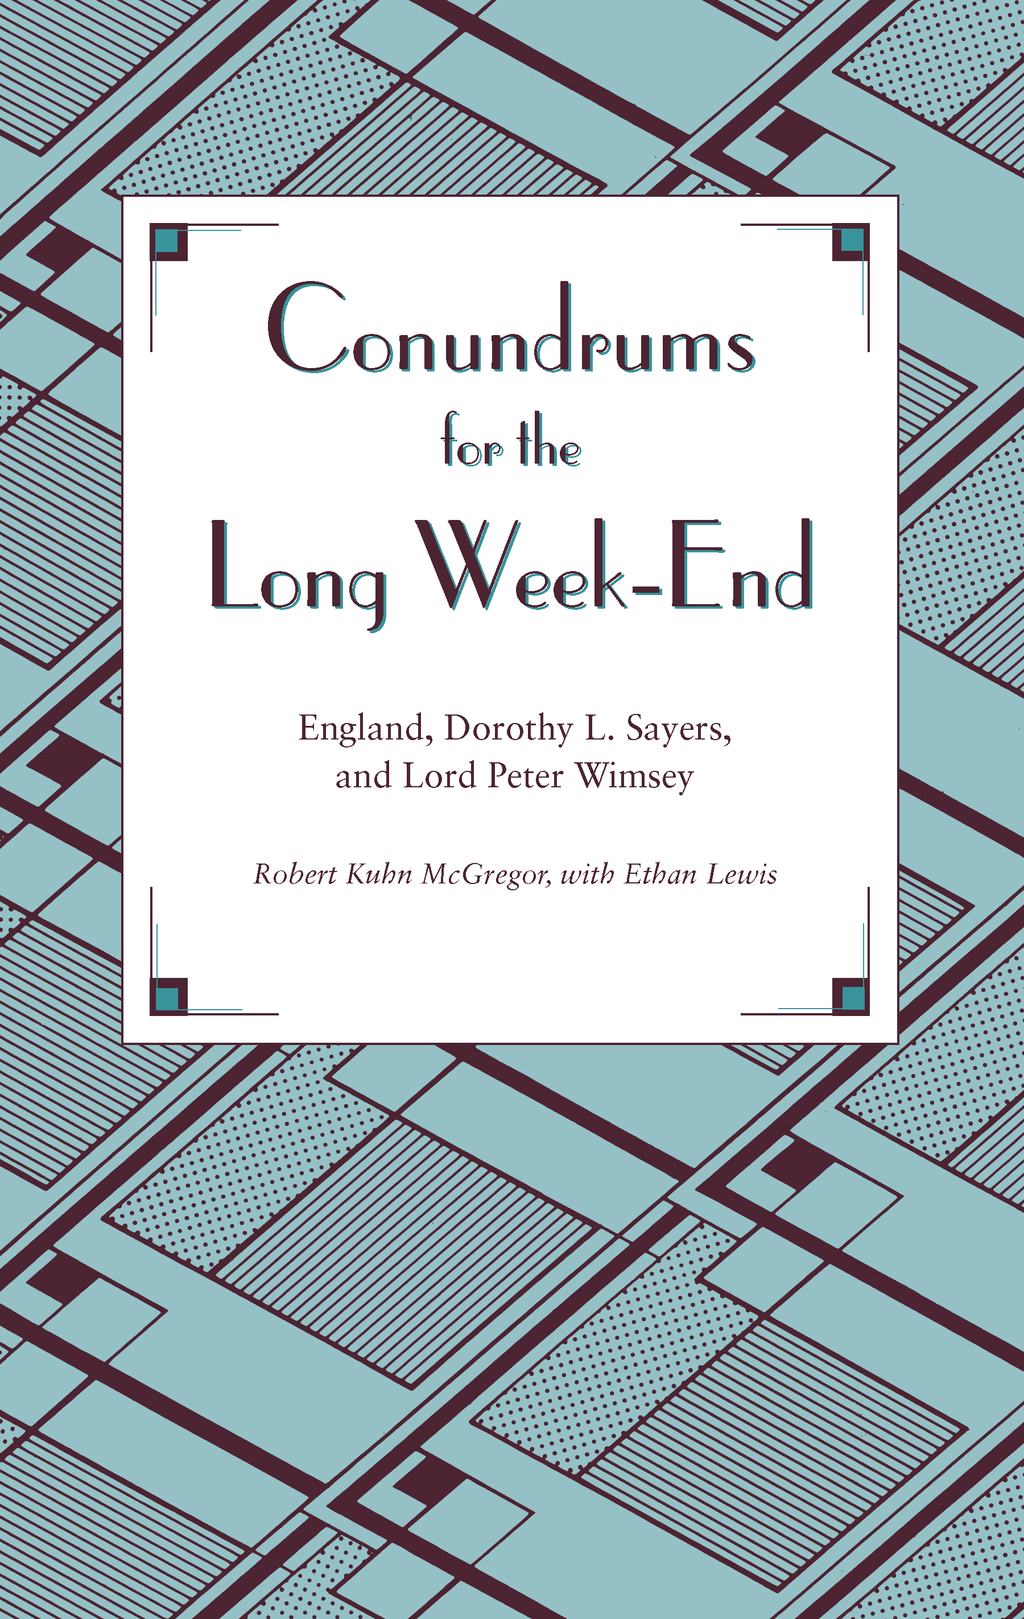 Conundrums for the Long Week-End: England, Dorothy L. Sayers, and Lord Peter Wimsey